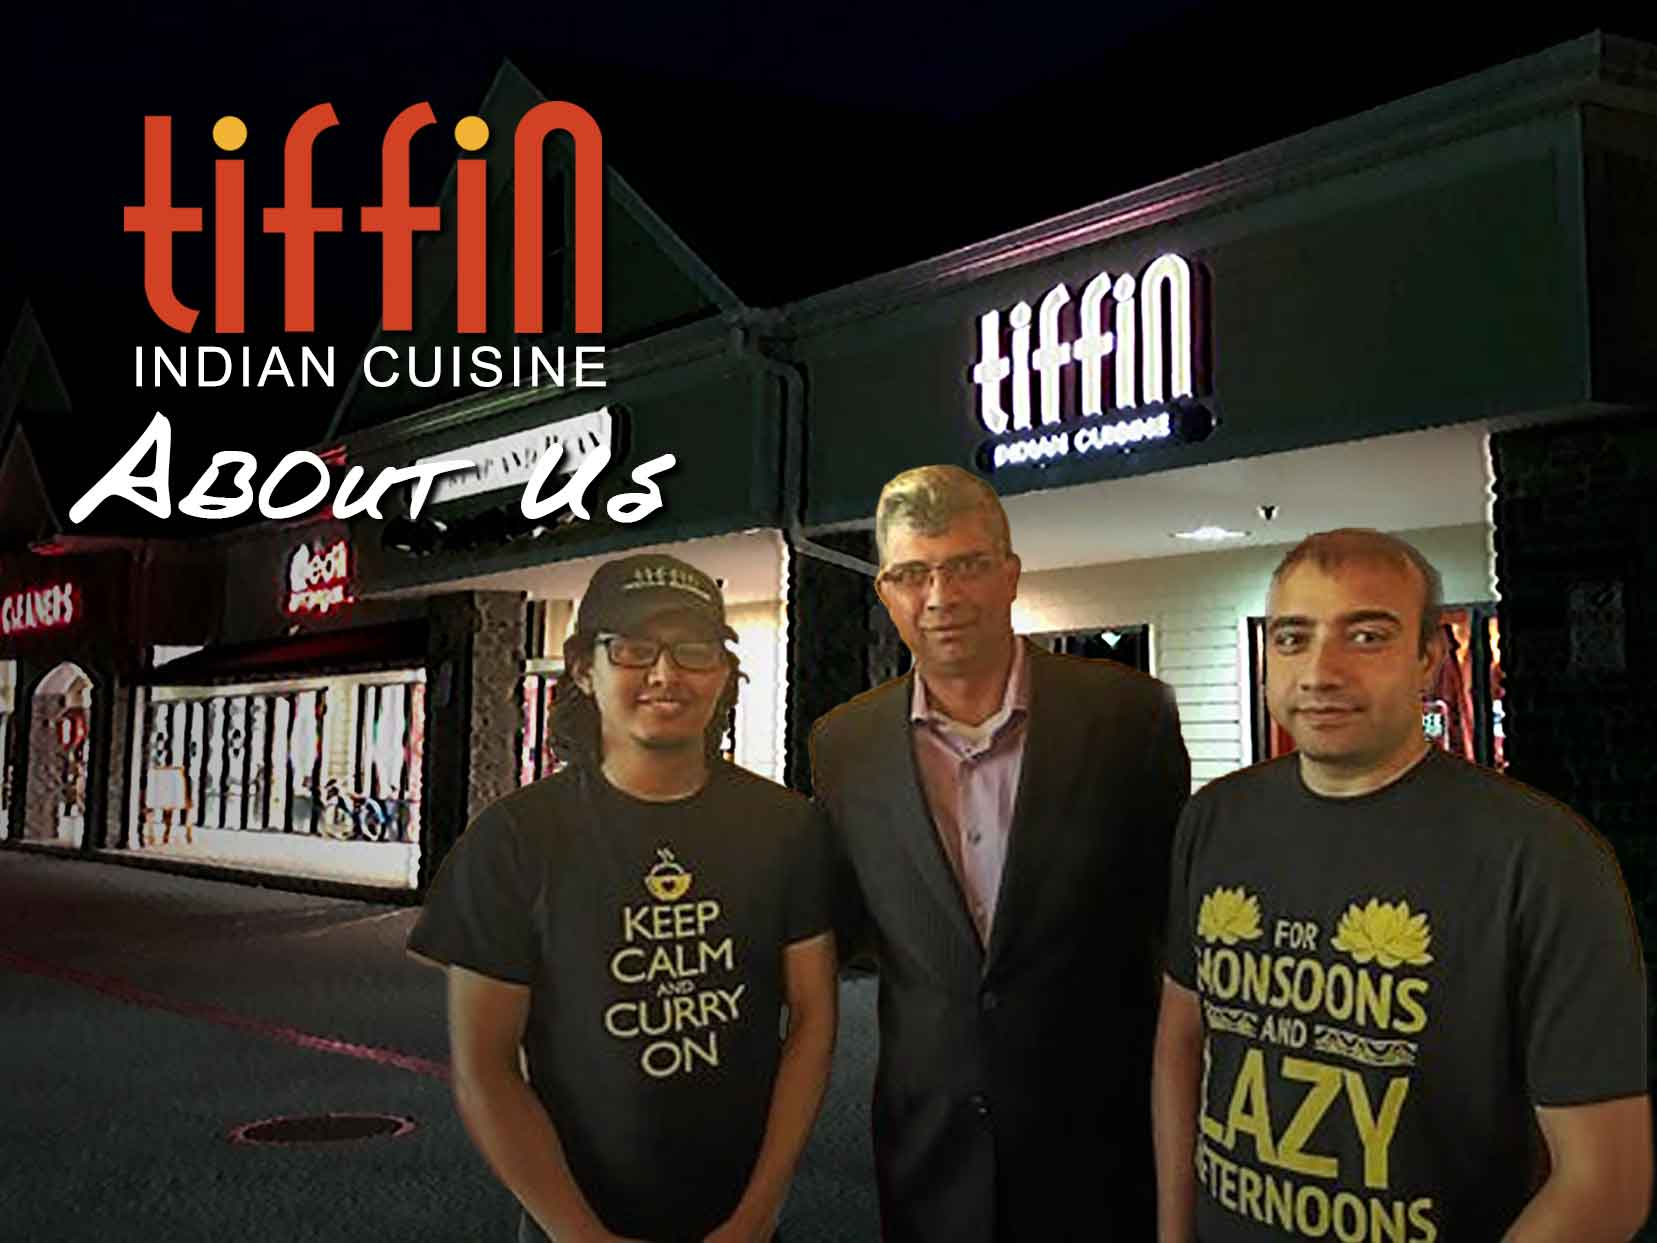 About  tiffin indian Cuisine